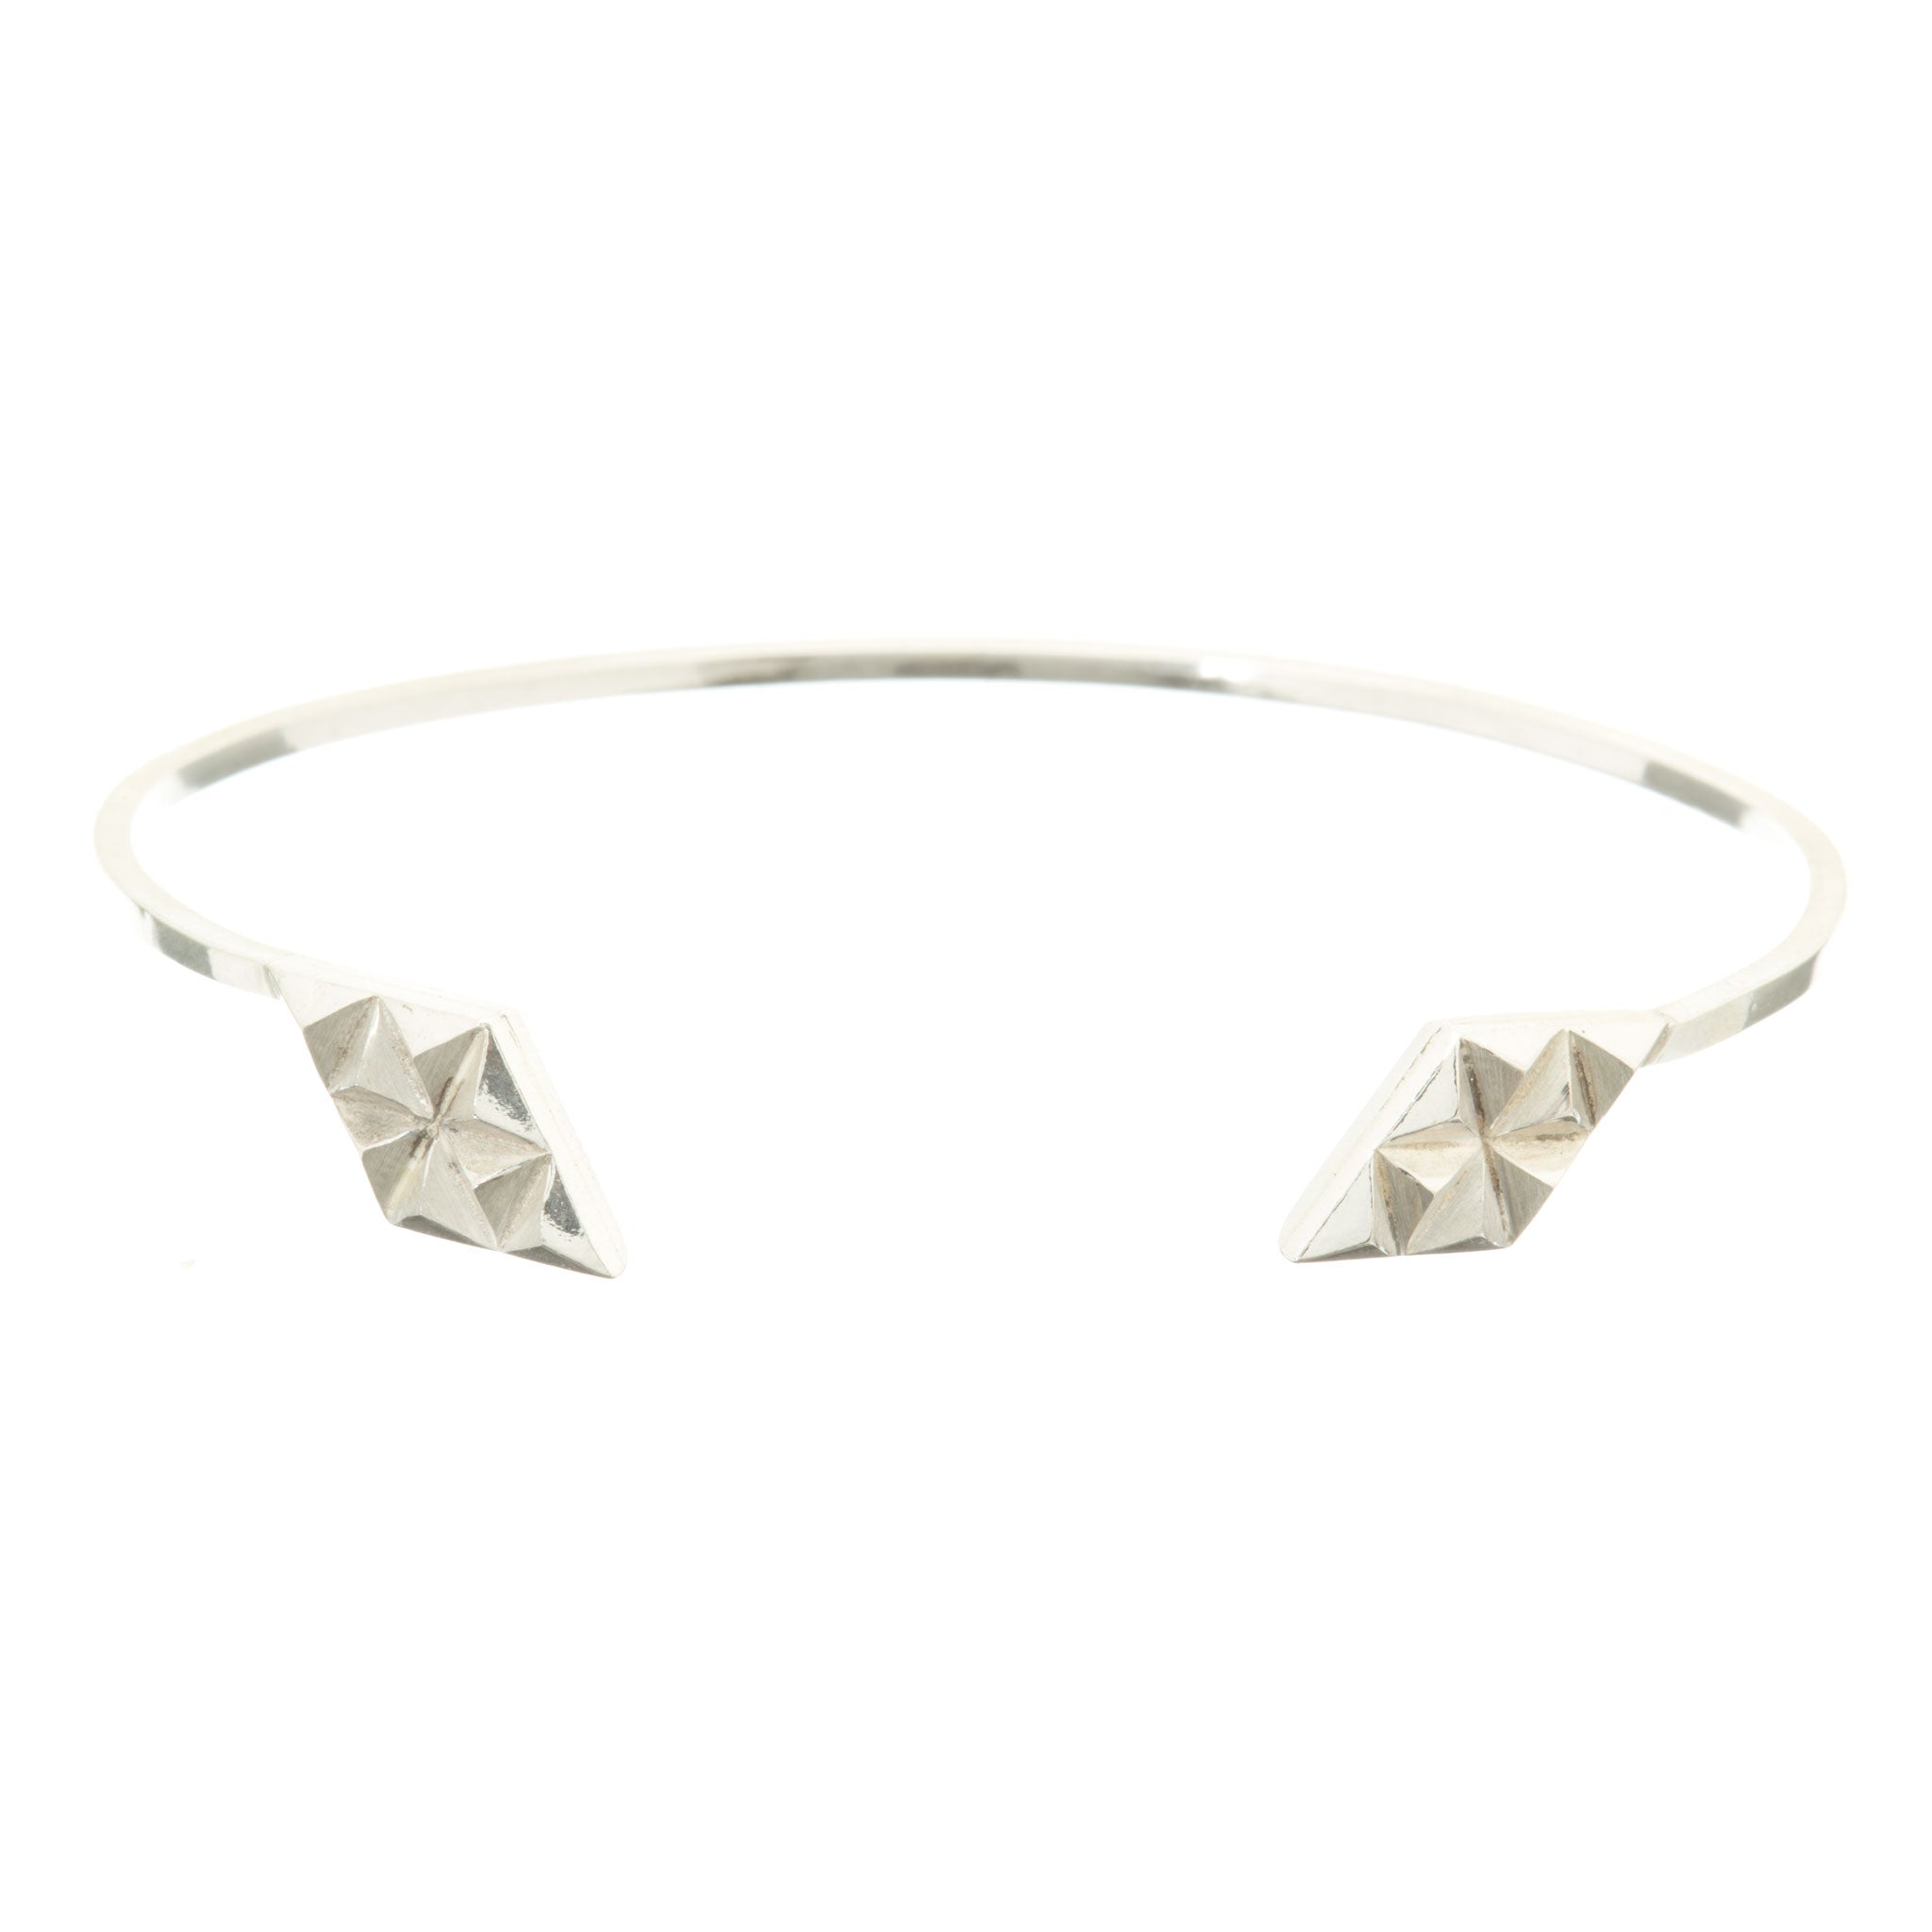 cubic in with bangle bracelet sterling silver bangles open circle zirconia